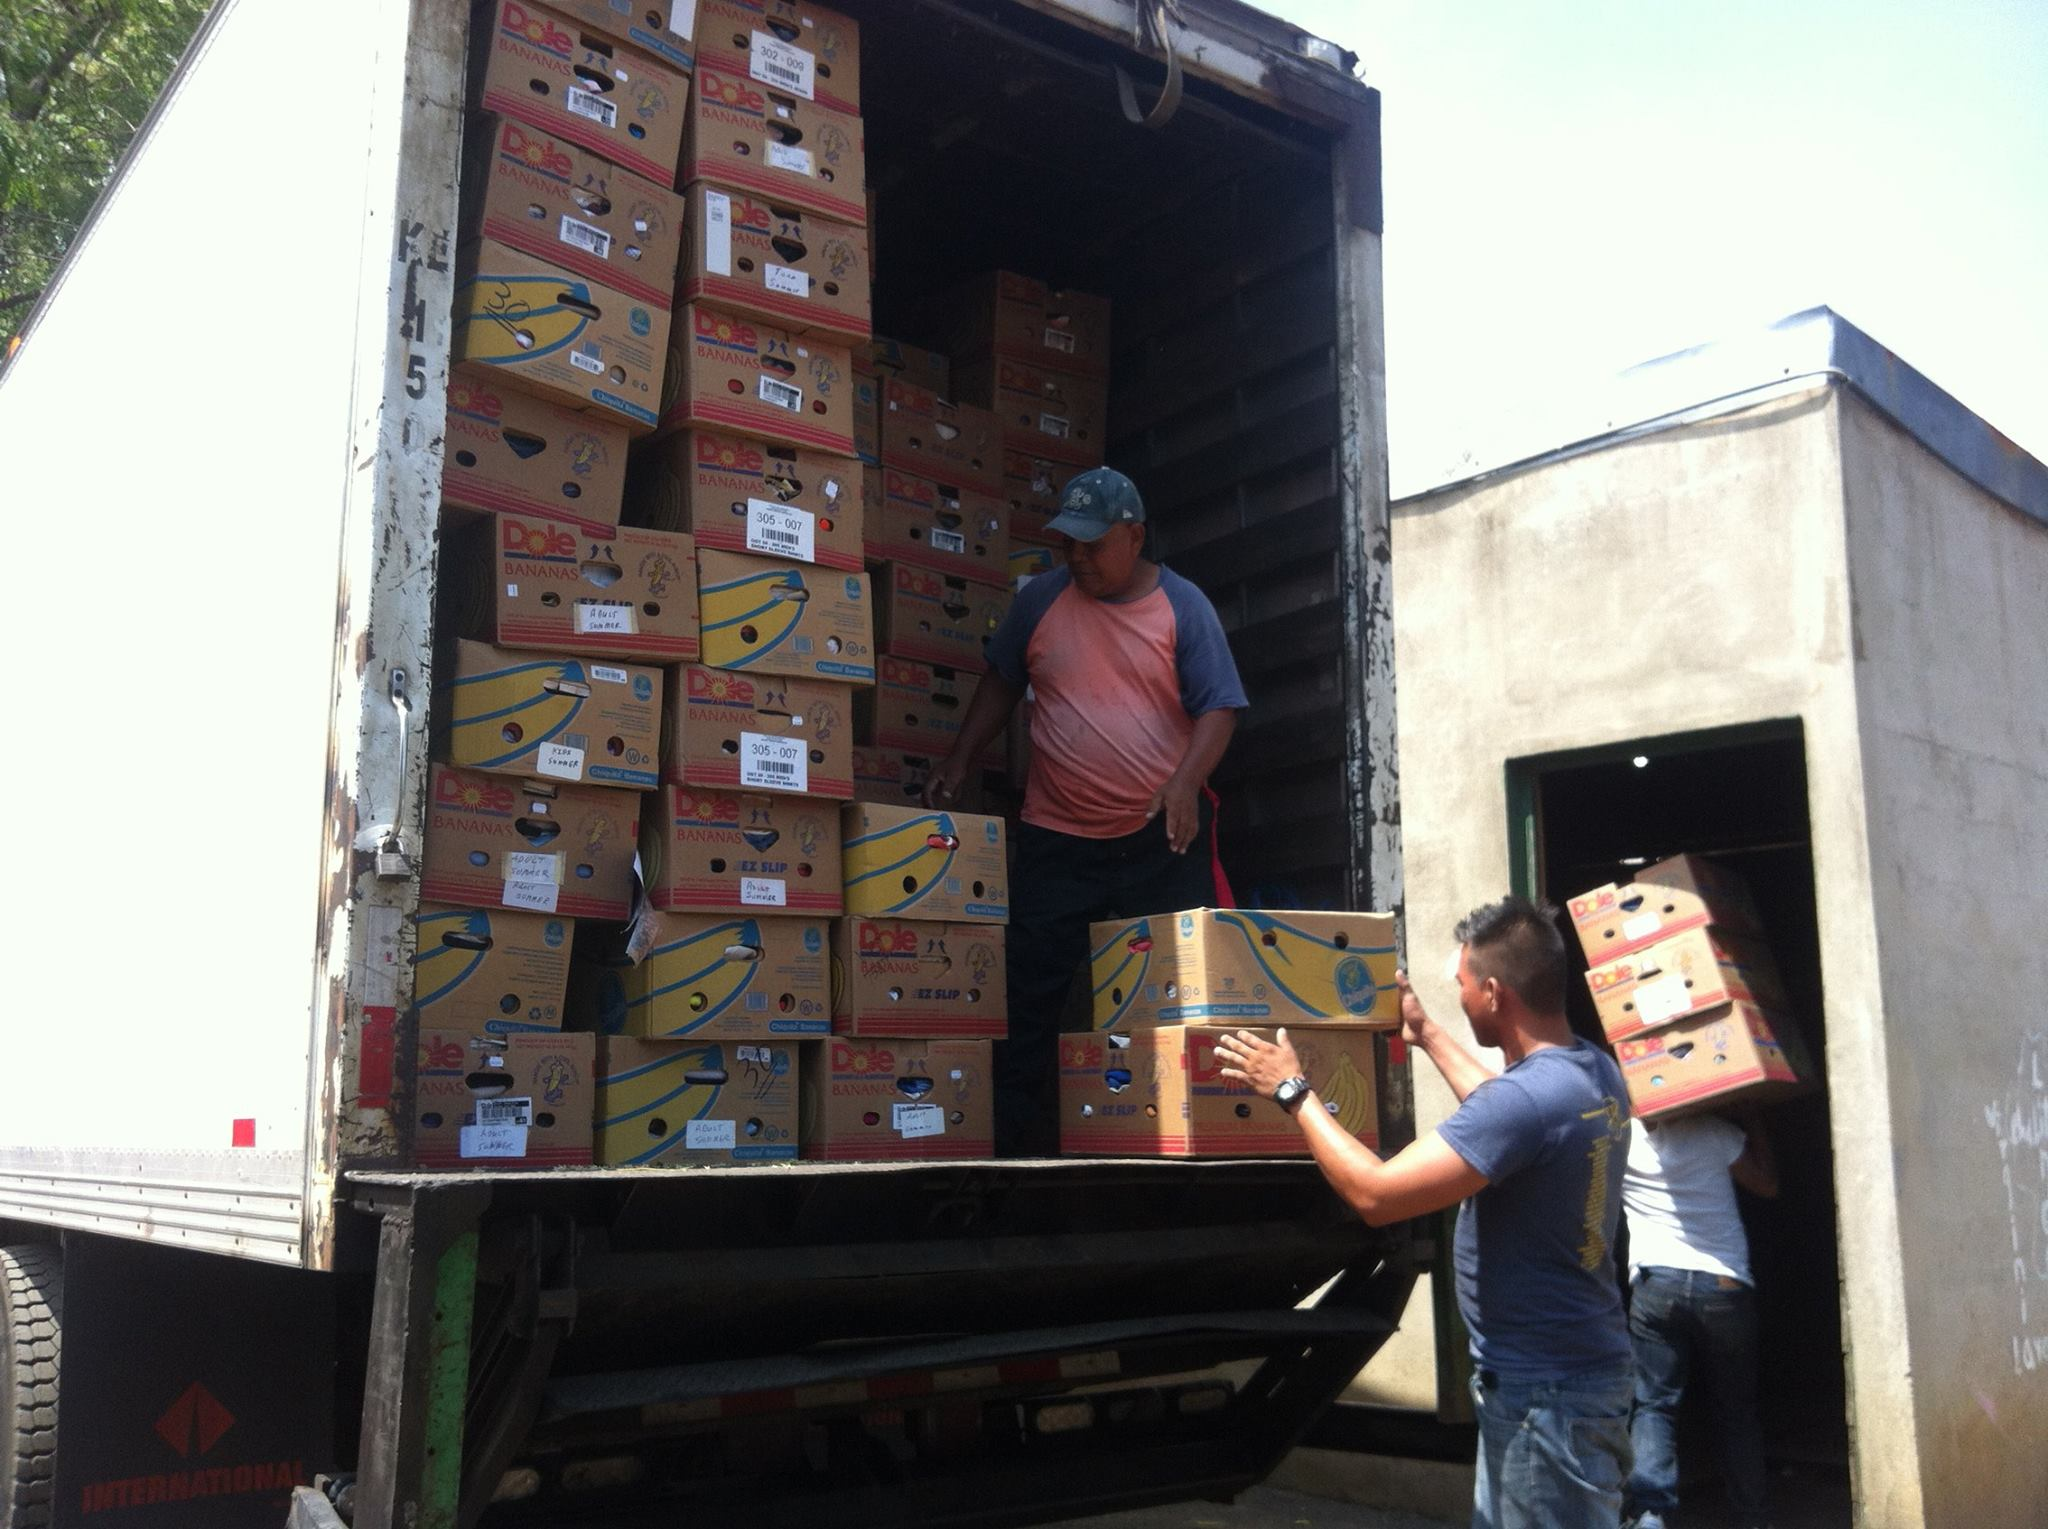 Indiana branch volunteers recently loaded two domestic shipments the first shipment contained medical equipment and supplies for red bird mission in